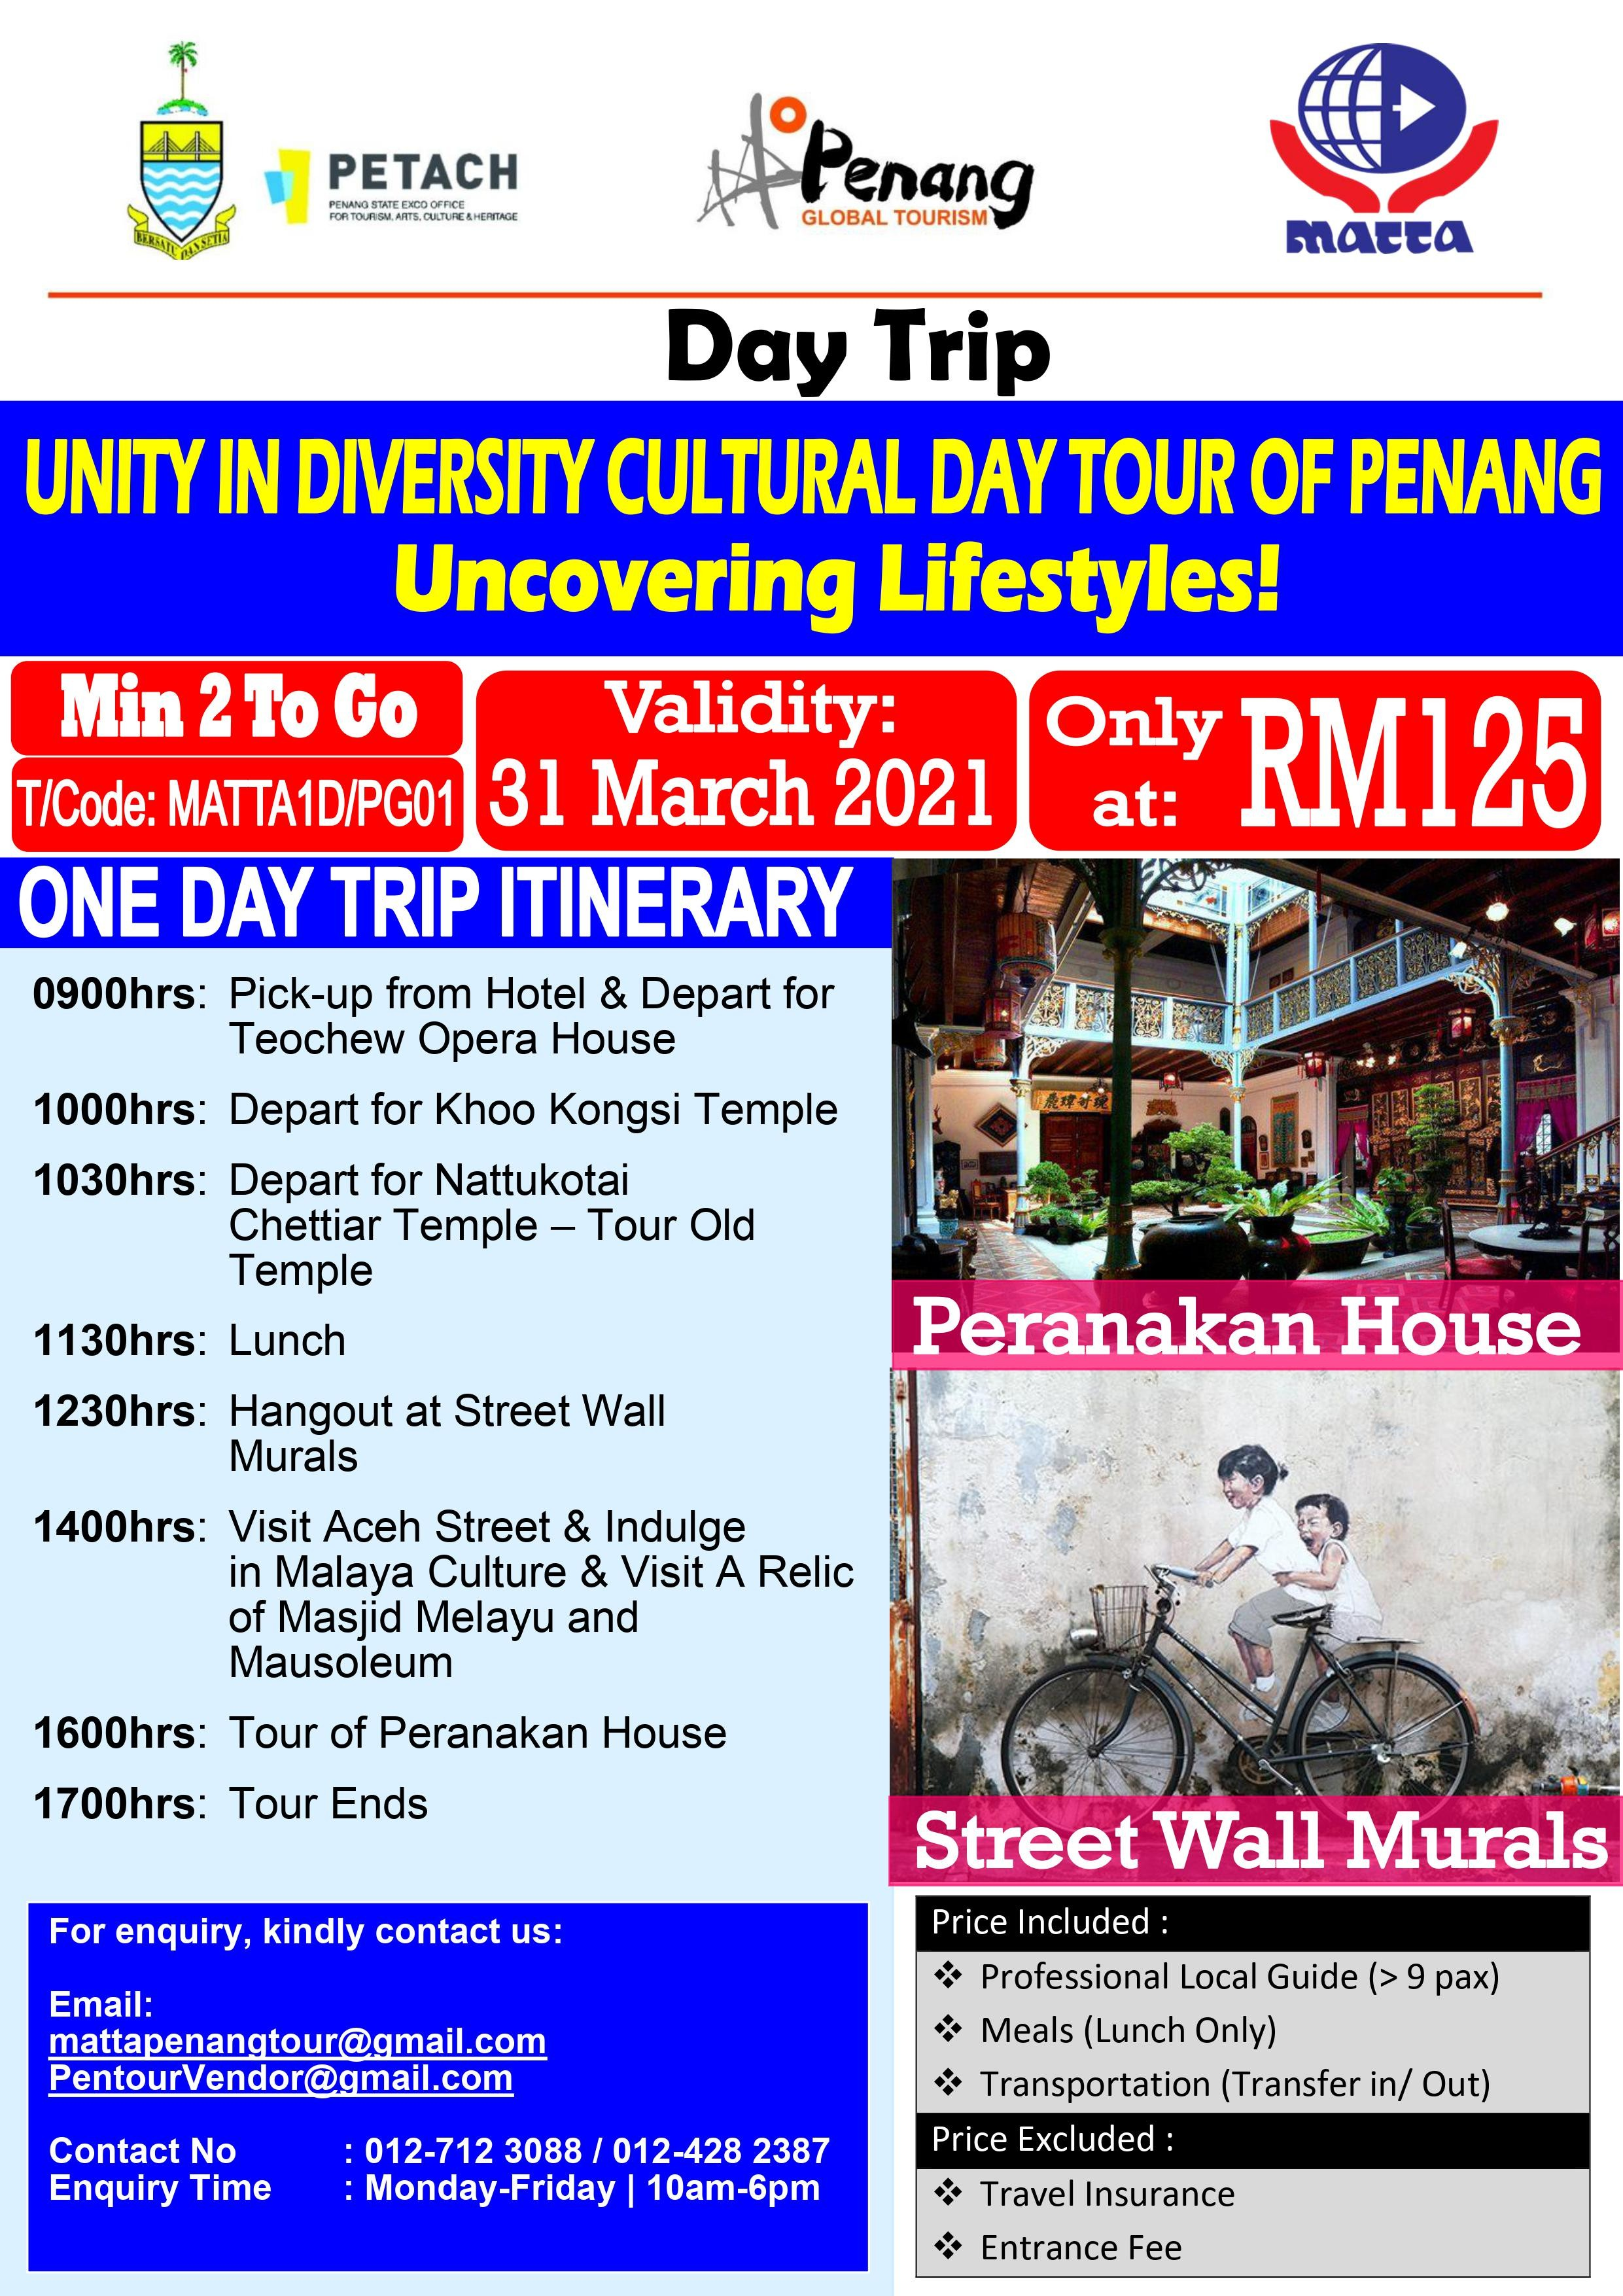 Unity in DIversity Cultural Tour Penang - 1 Day